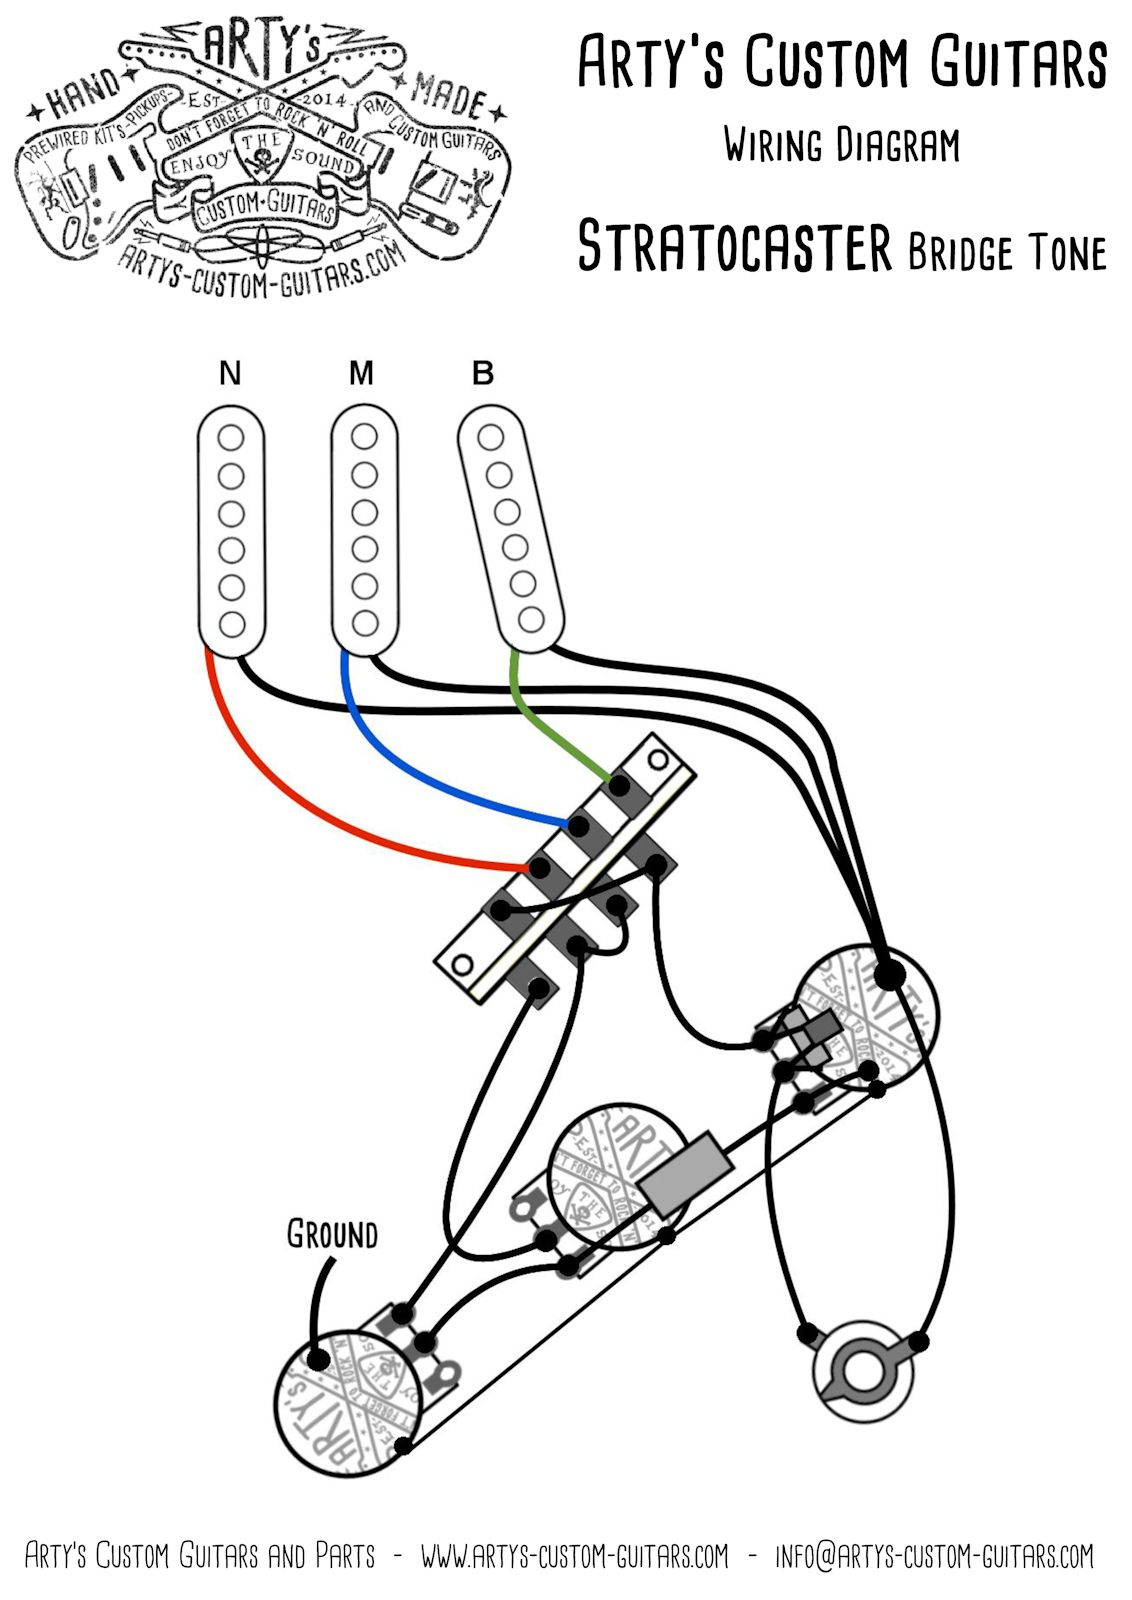 Pre Wired Strat Wiring Diagram Worksheet And Standard Stratocaster St Bridge Tone Control Vintage Kit Rh Pinterest Com Pickup Fender Pickguard